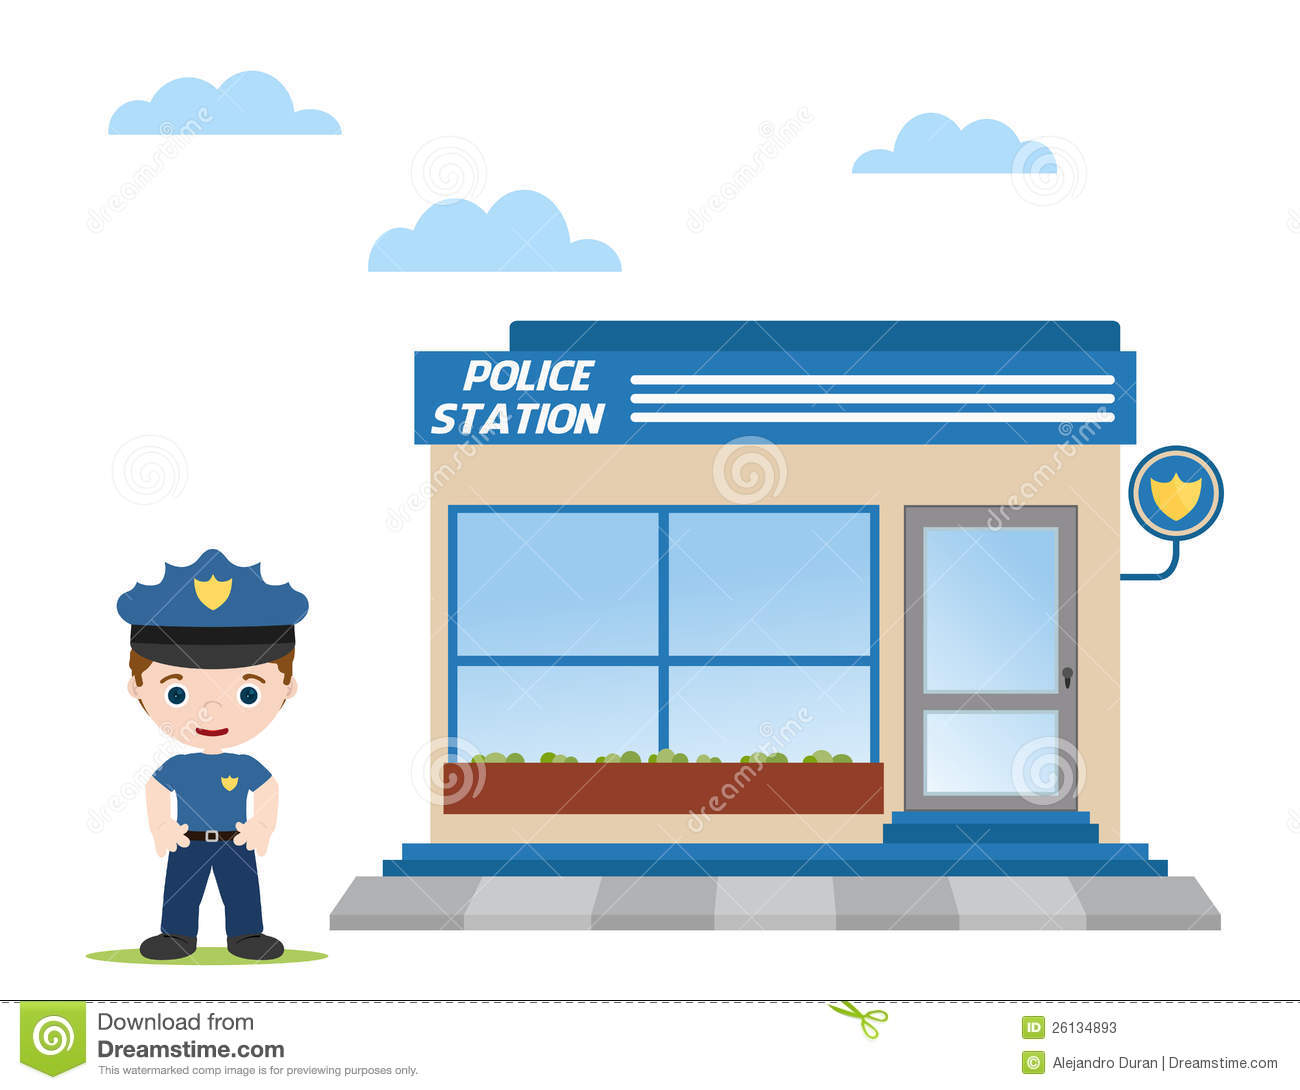 Police Station With Police Officer In Fr-Police Station With Police Officer In Front-4